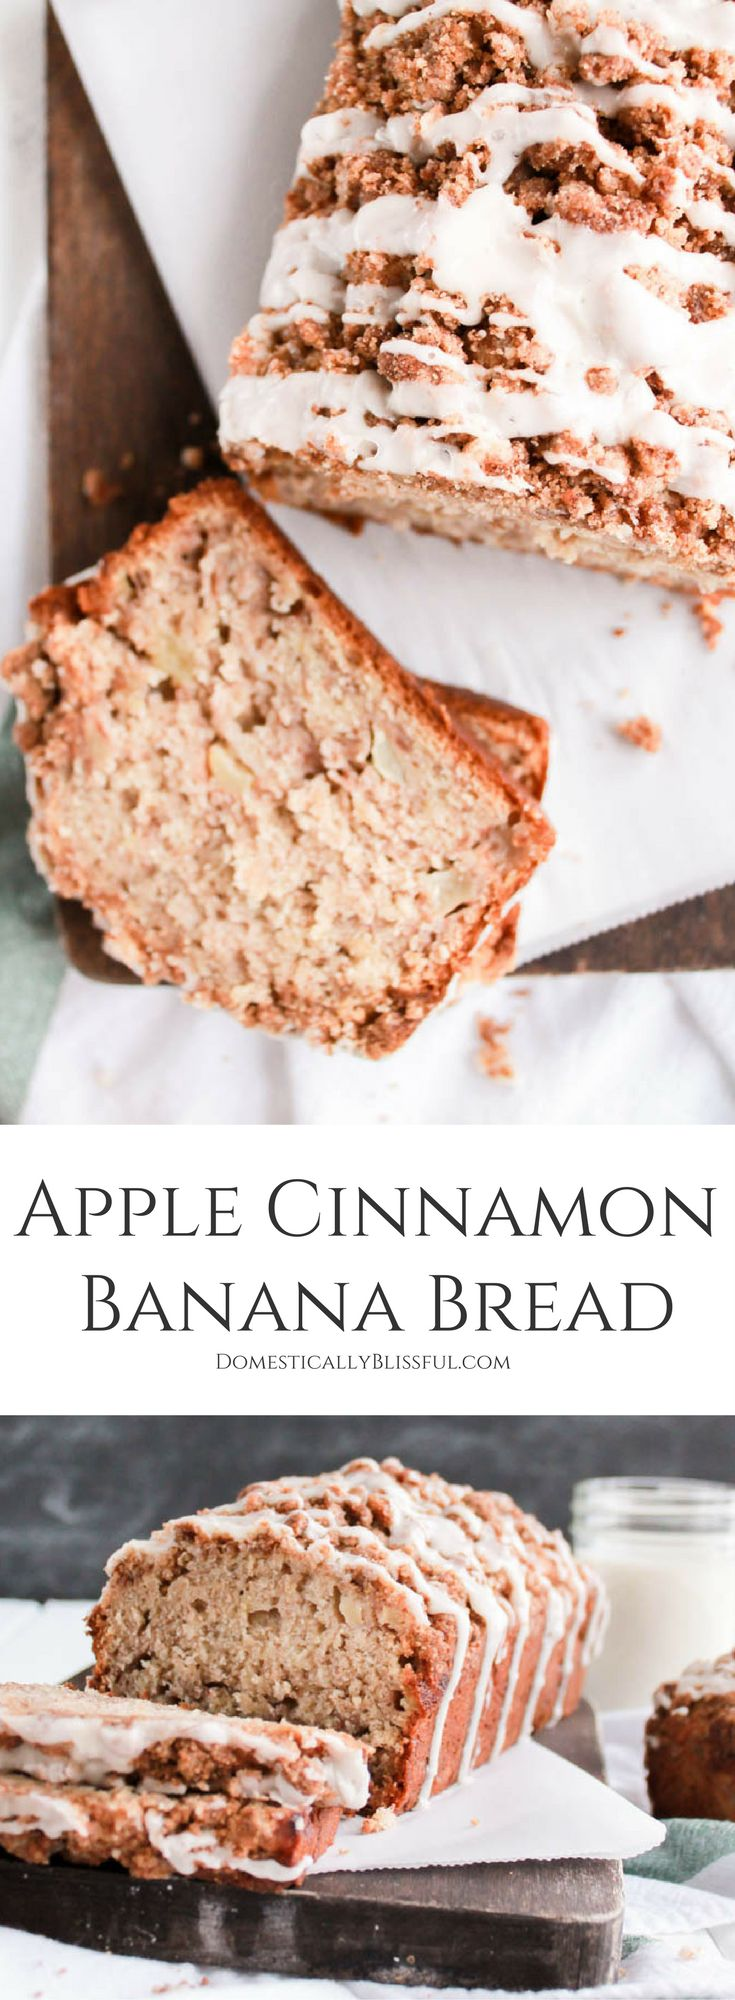 This Apple Cinnamon Banana Bread with streusel & icing drizzle is the perfect way to use up your extra apples & bananas & it makes your home smell as delicious as this bread tastes! | cinnamon apple banana bread | apple banana bread | apple bread | cinnamon bread recipe | baking | homemade recipe | fall baking | fall dessert | fall breakfast | fall brunch | thanksgiving breakfast | thanksgiving brunch | fall food | leftover bananas | leftover apples | streusel icing |